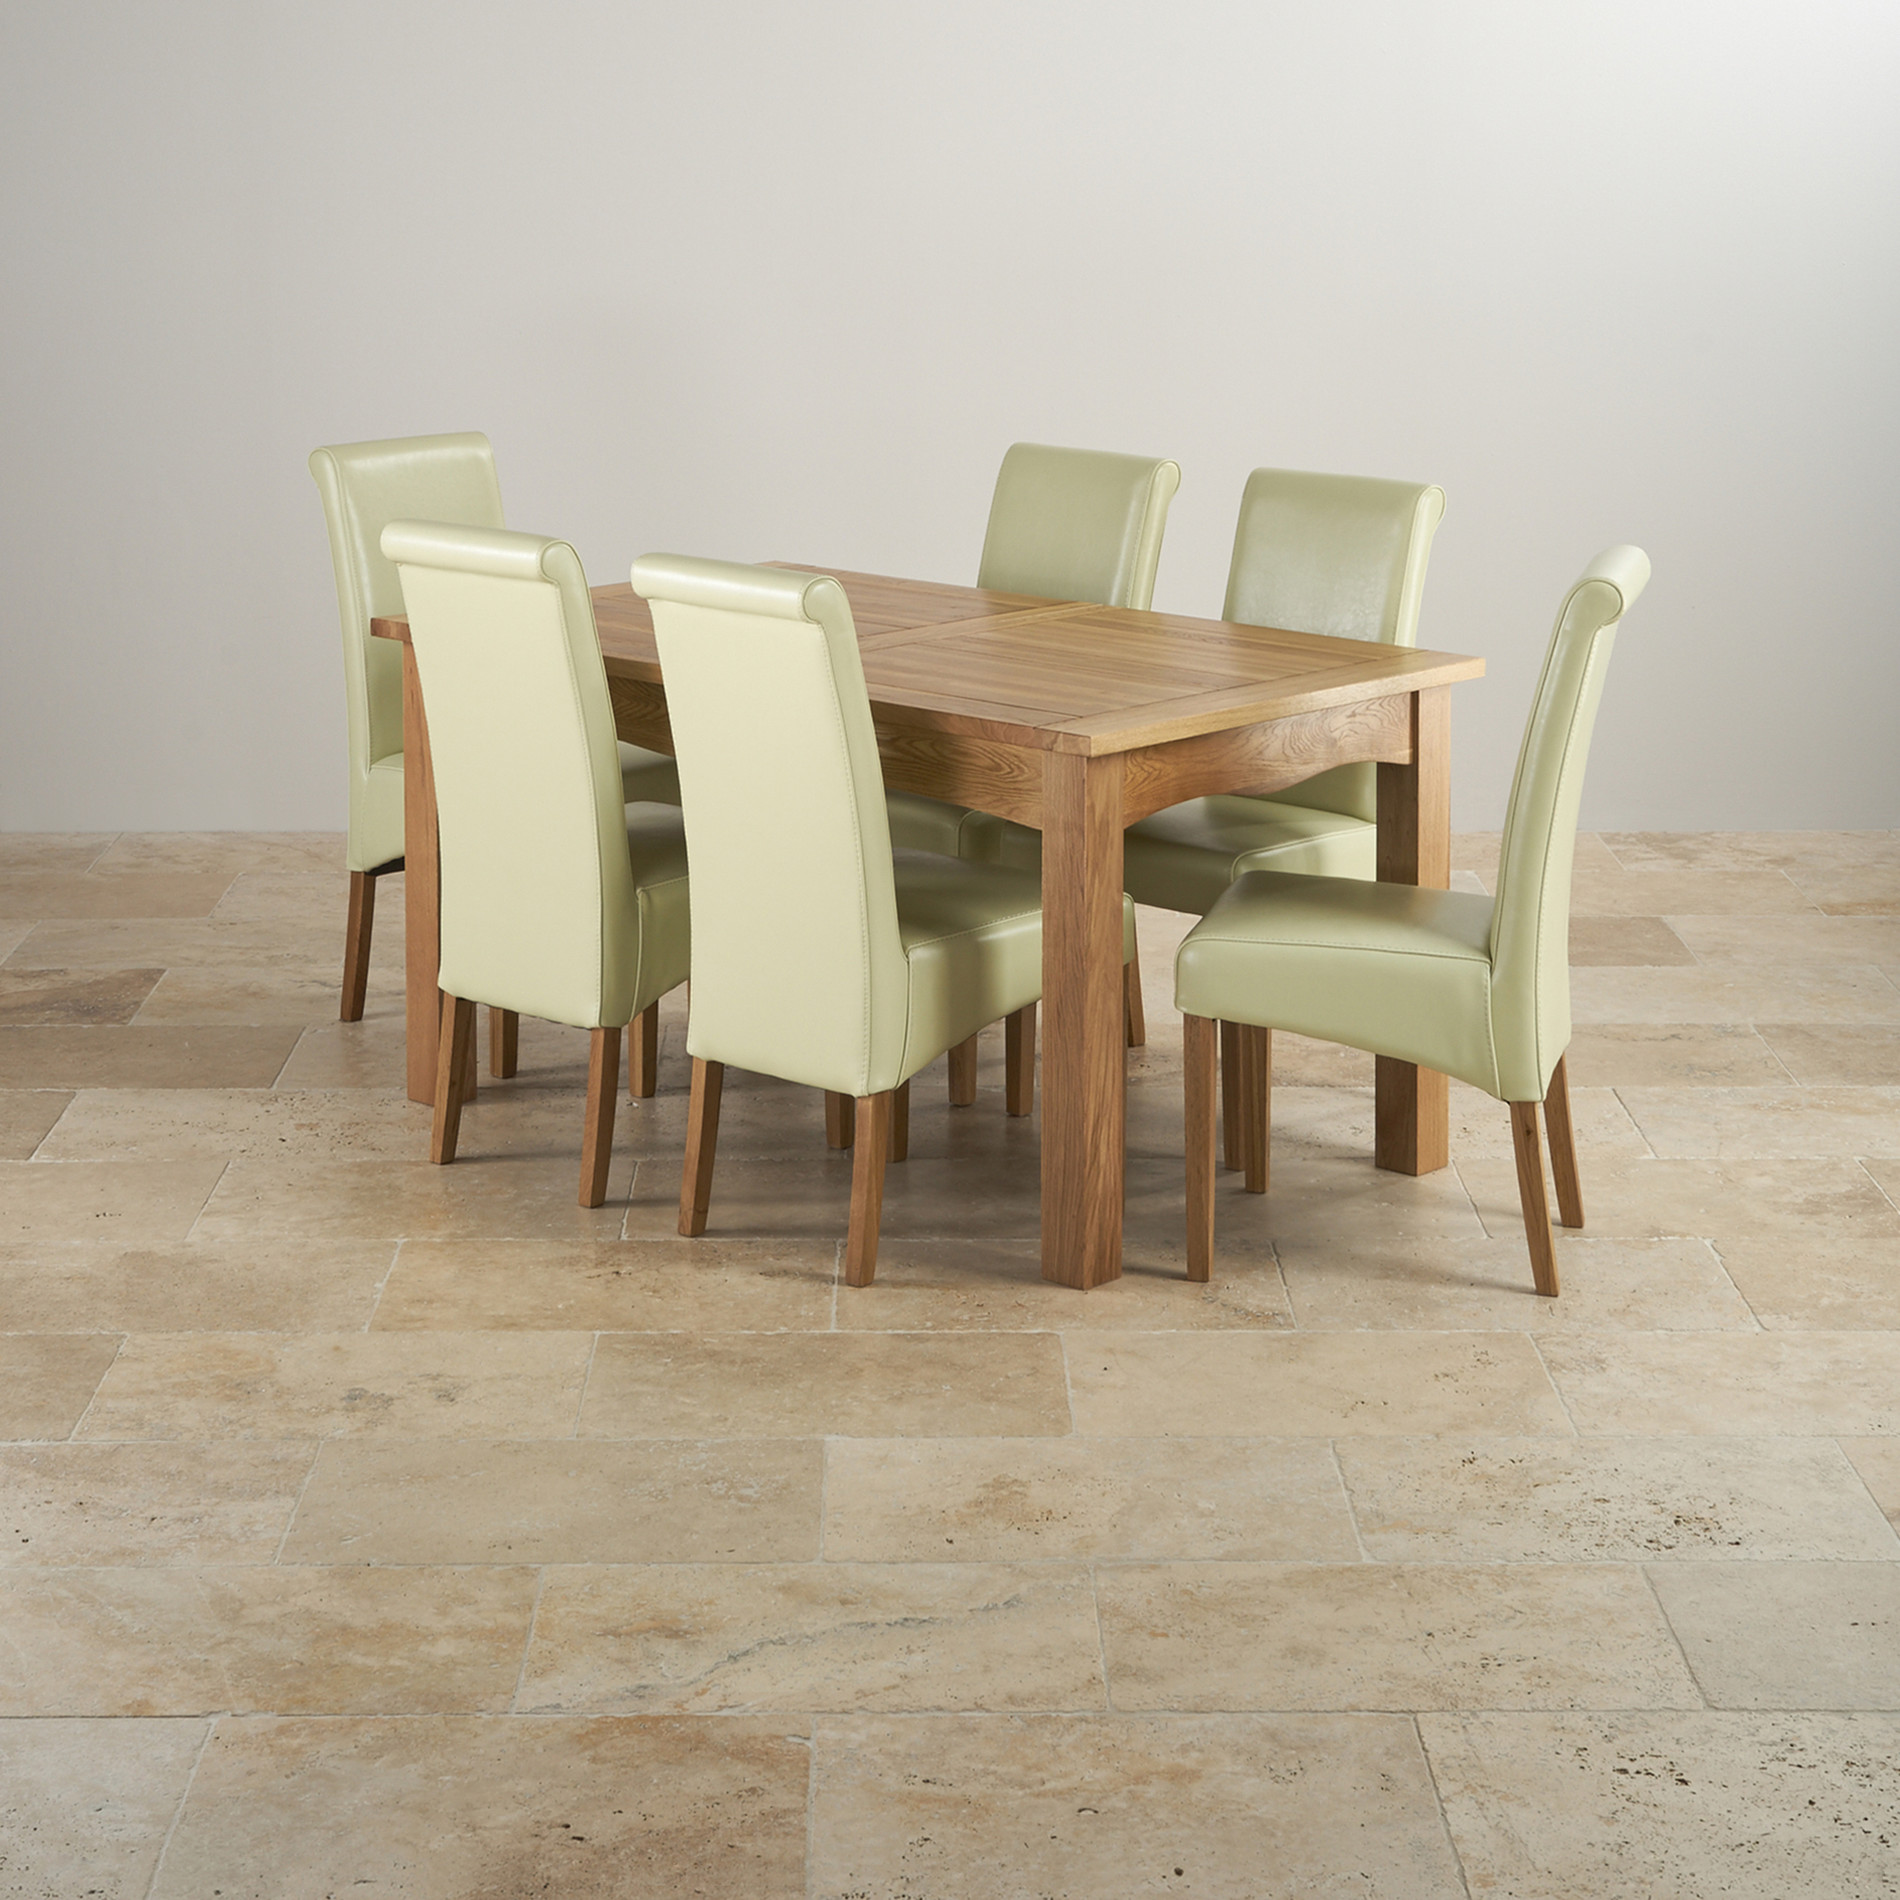 Cairo solid oak 5ft dining table with 6 cream chairs for 5ft coffee tables